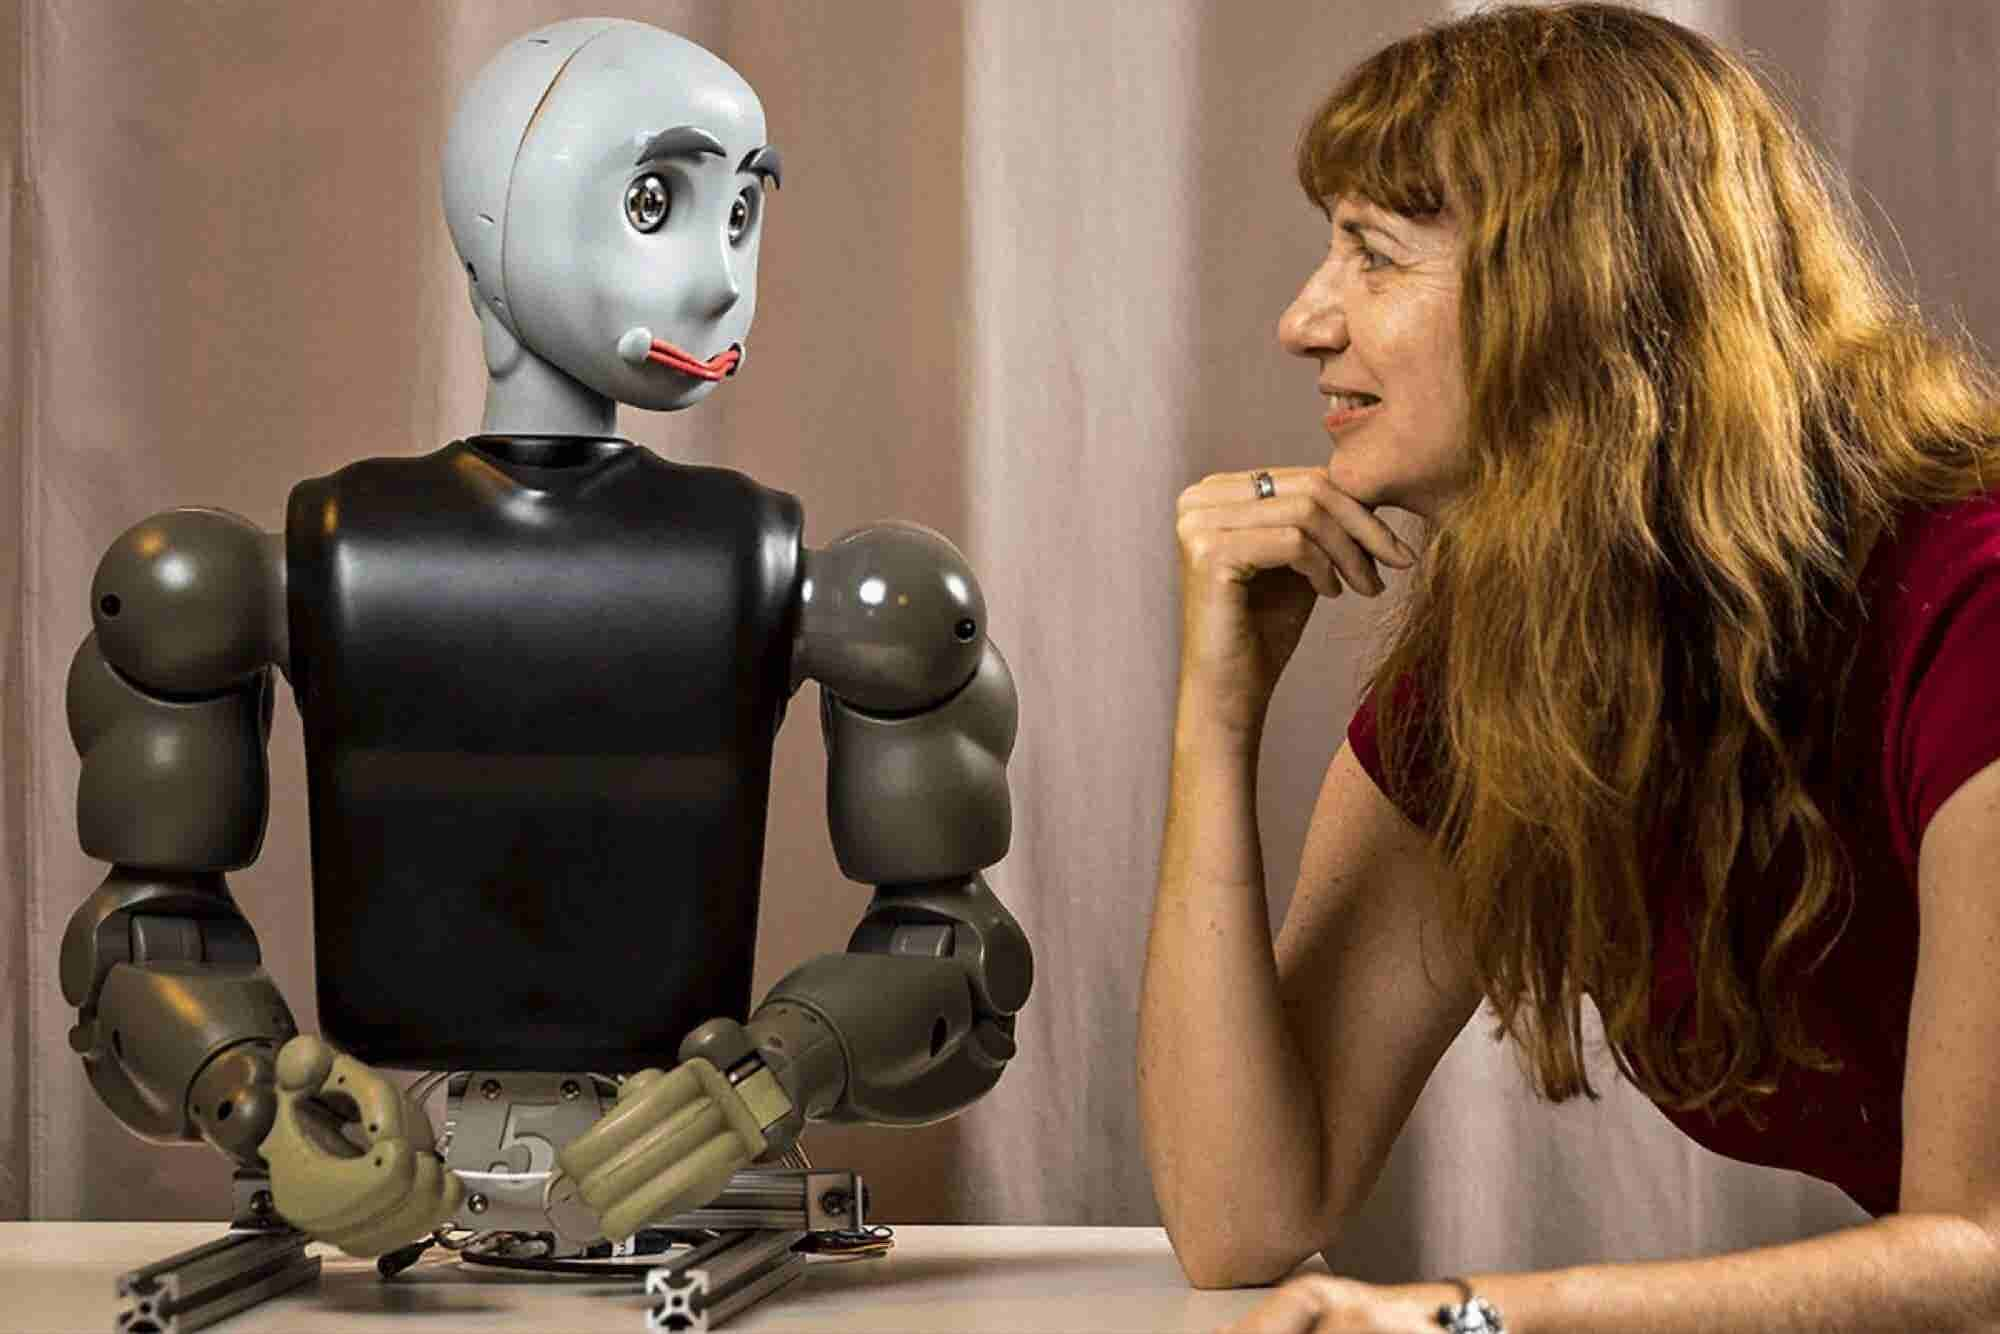 How Robot Therapists Can Fill a Gap in Health Care